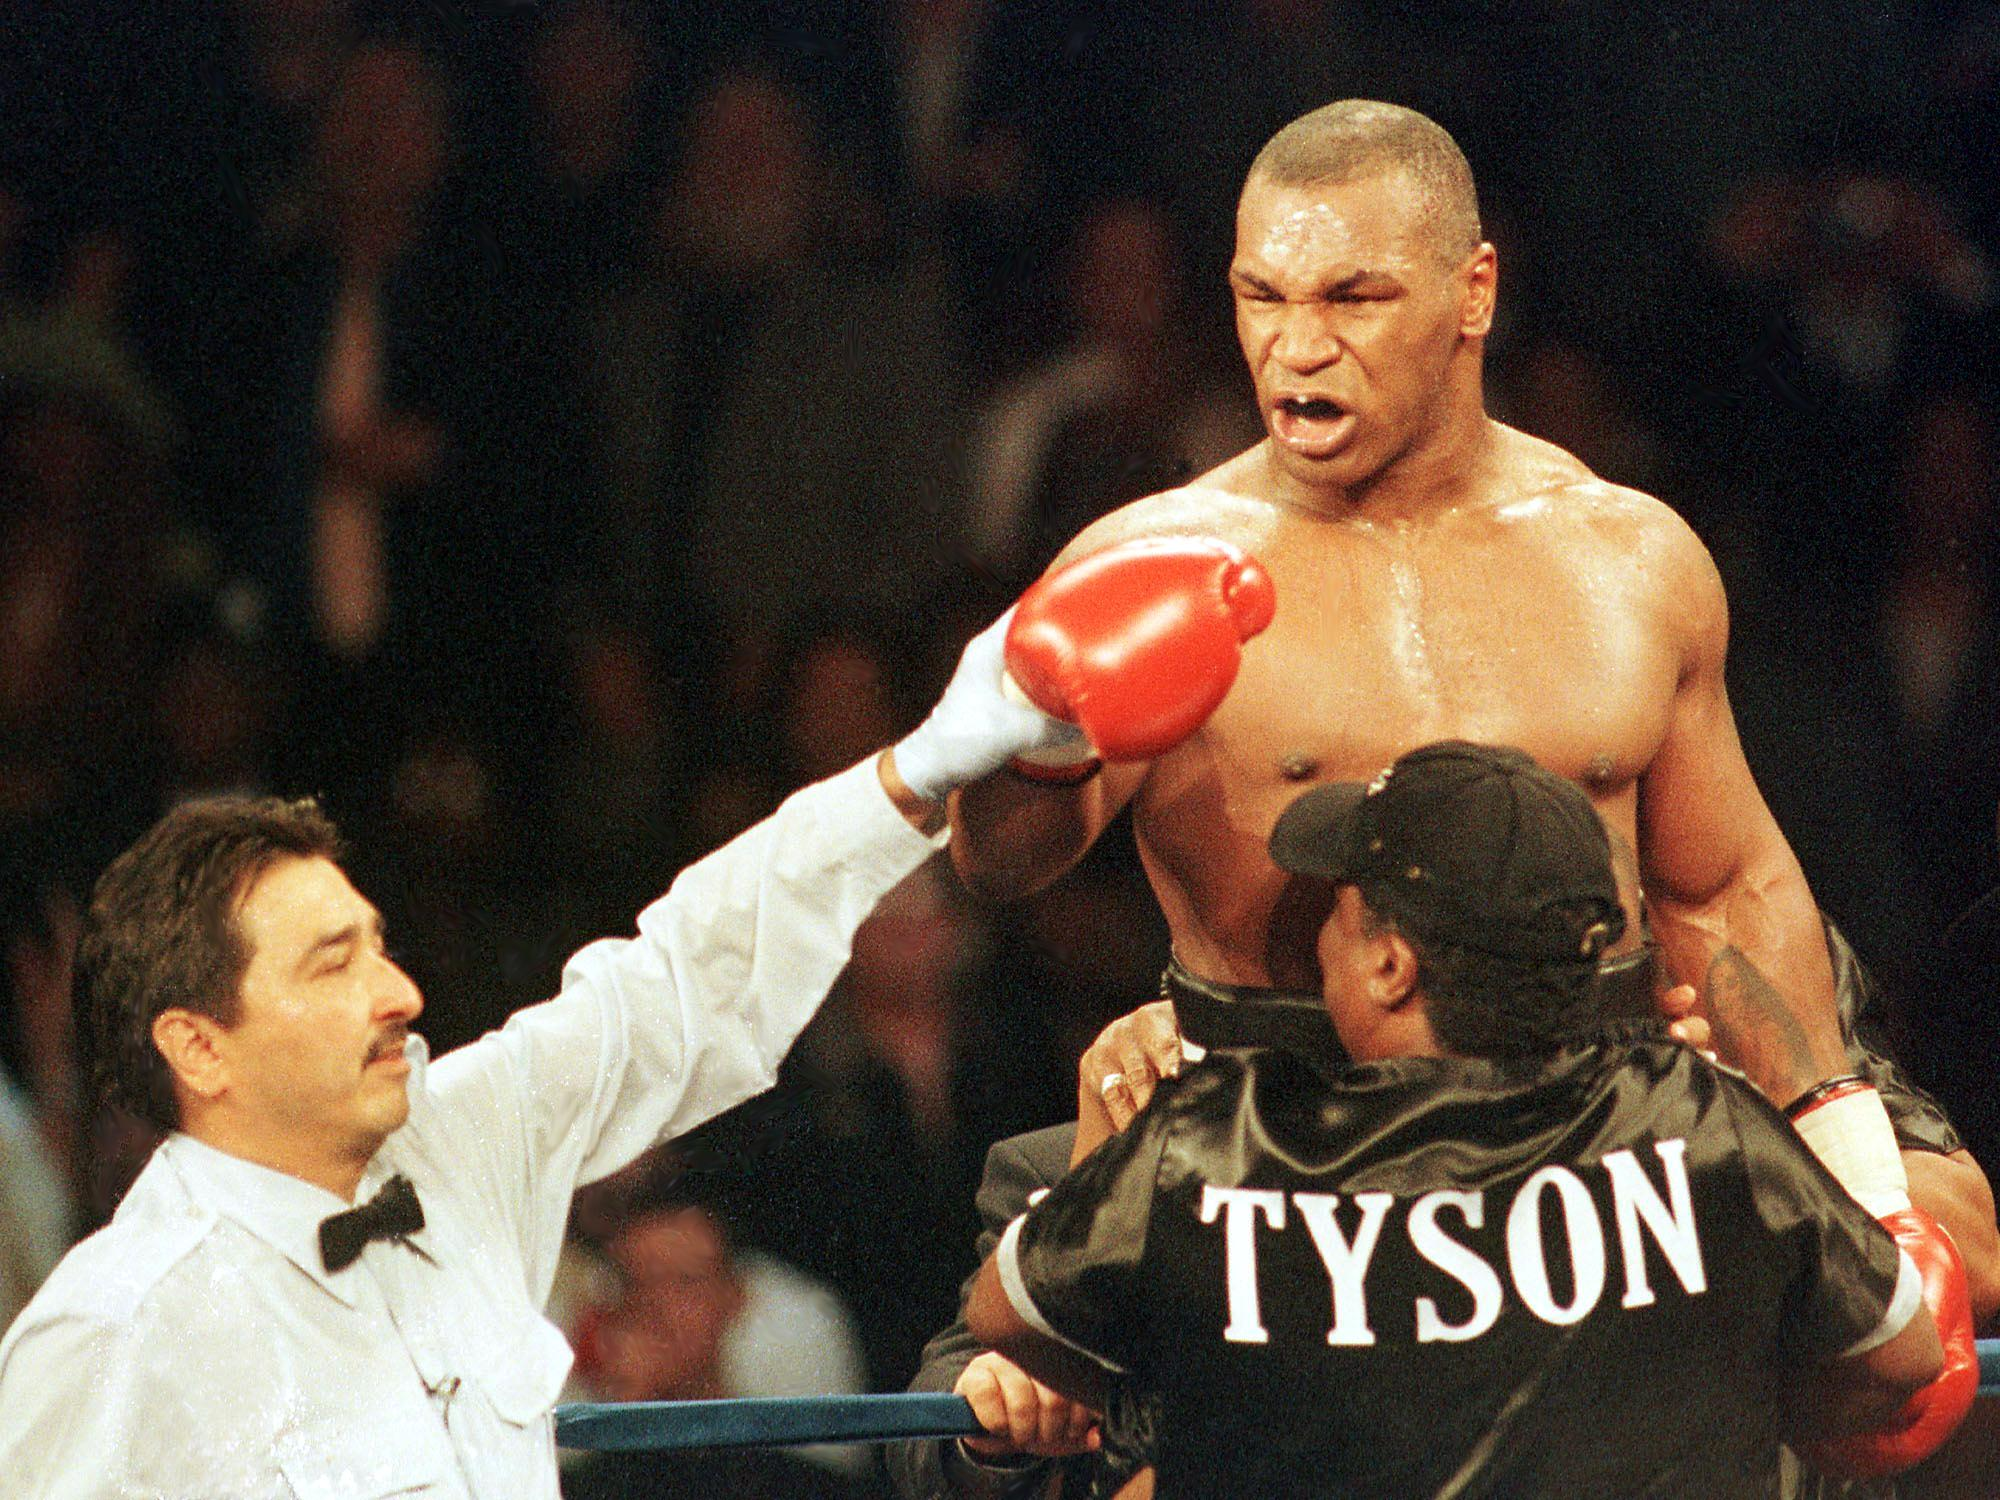 Mike Tyson's Lone Positive as a Child Was Getting Free Lunch